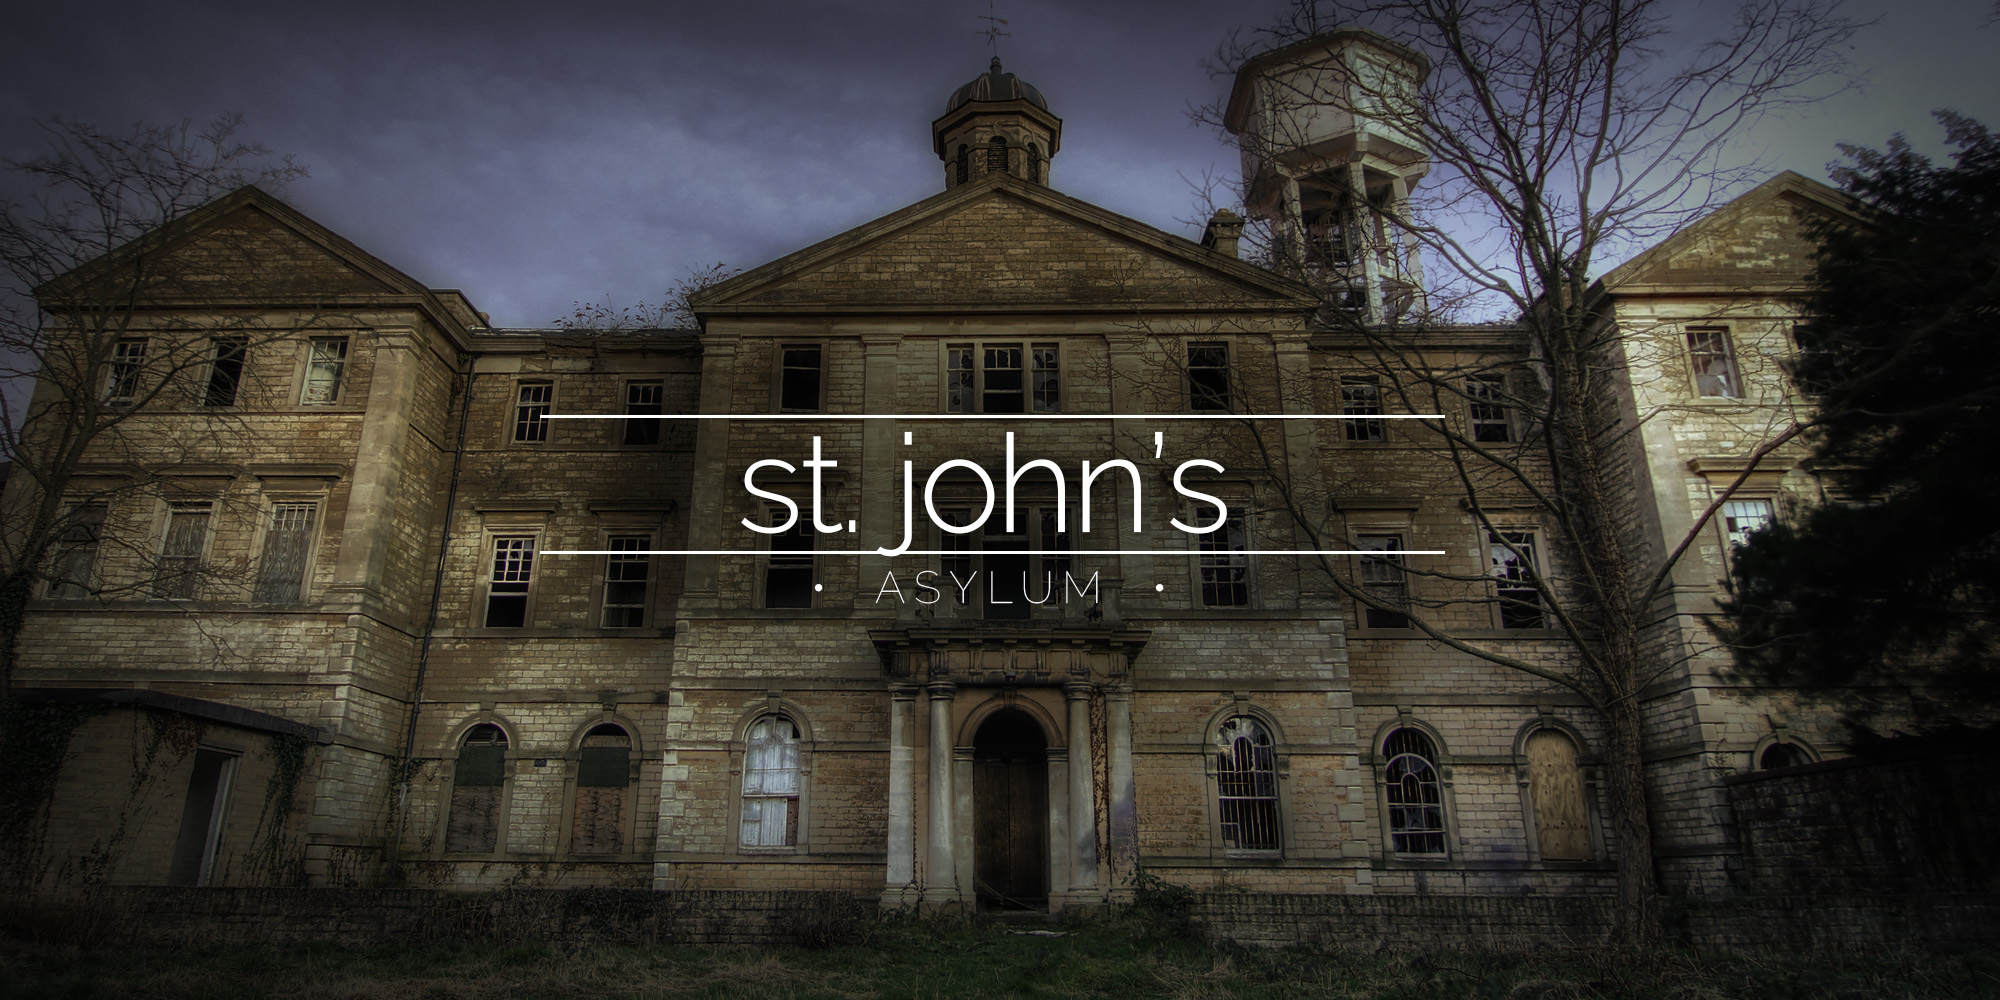 St John's Hospital aka County Pauper Lunatic Asylum, Lincoln